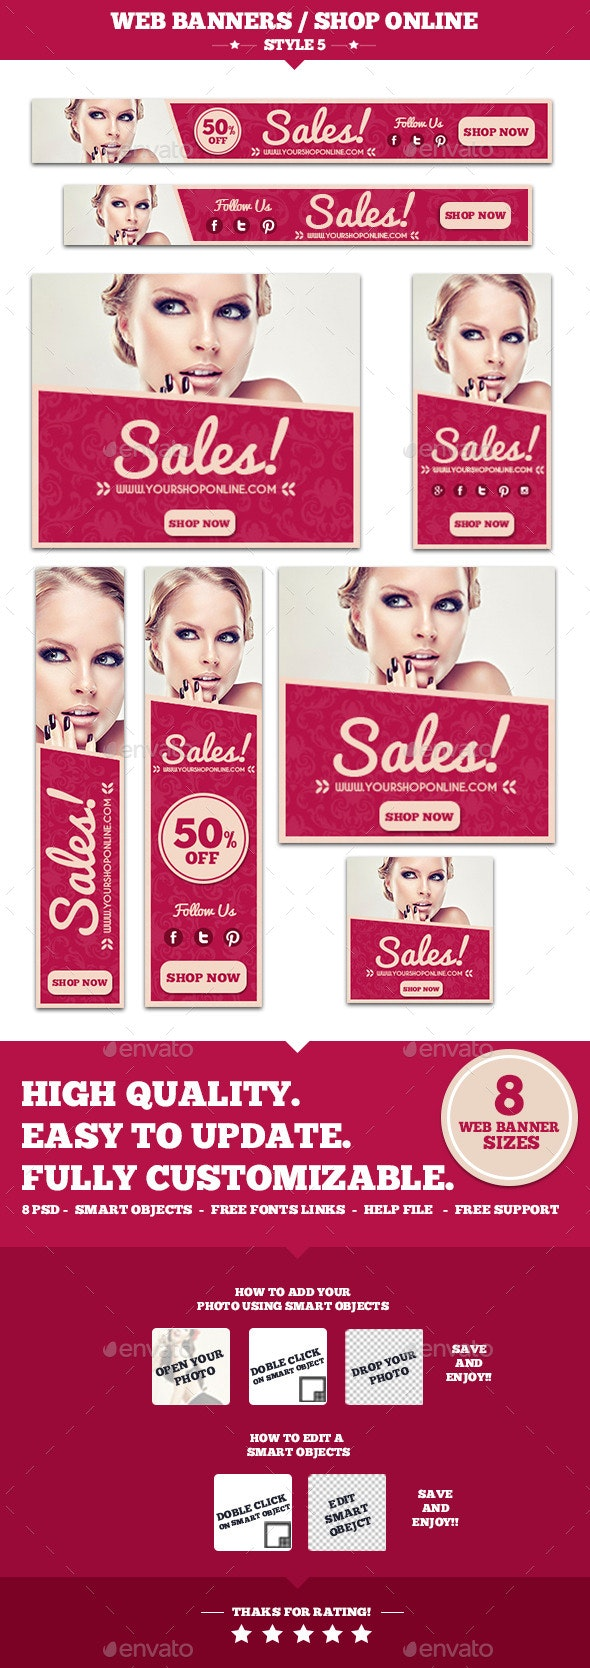 Web Banners Shop Online Style 5 - Banners & Ads Web Elements